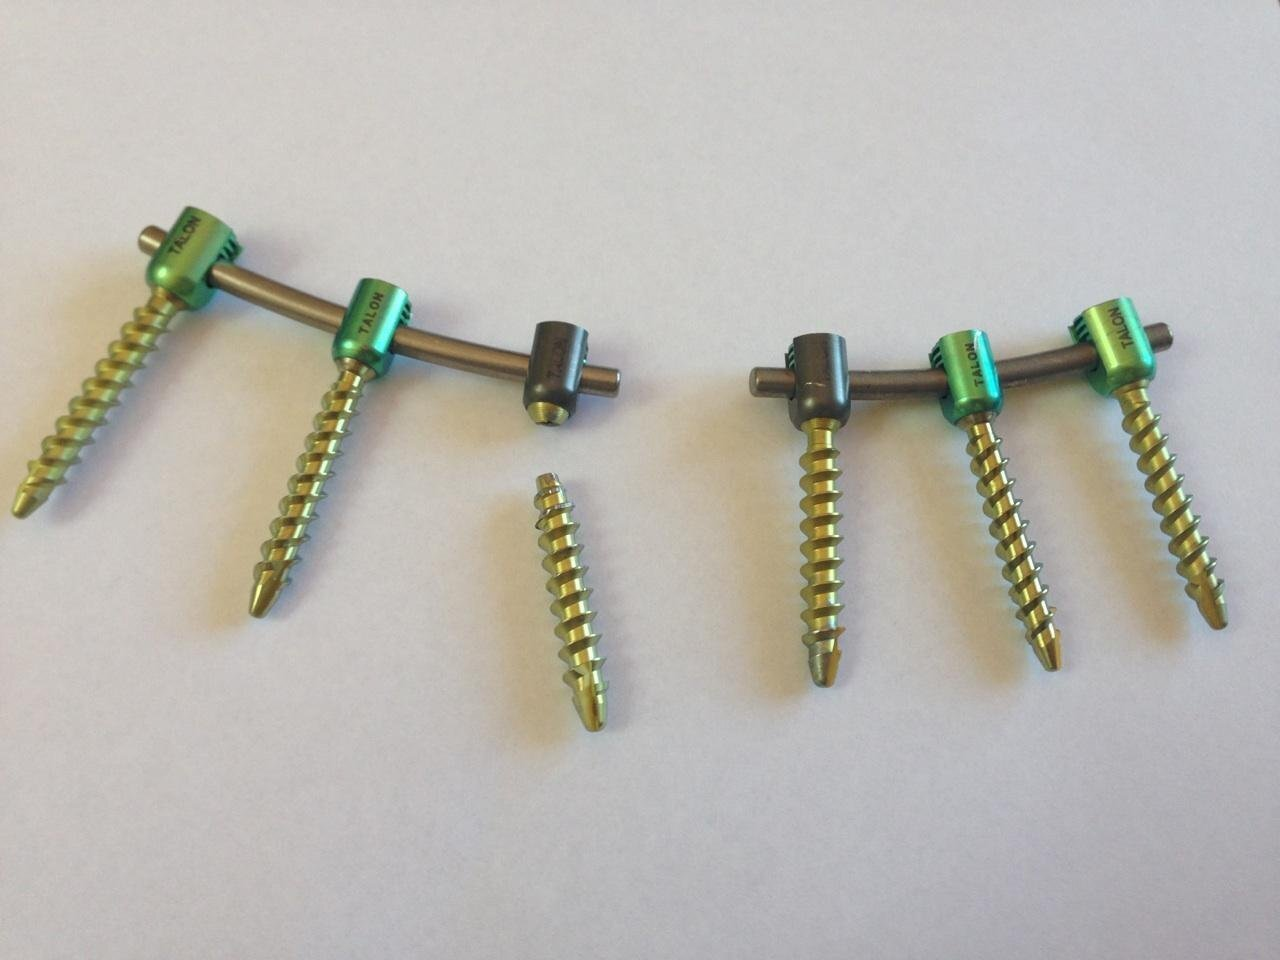 Lawsuit: Doctors used counterfeit screws - The San Diego